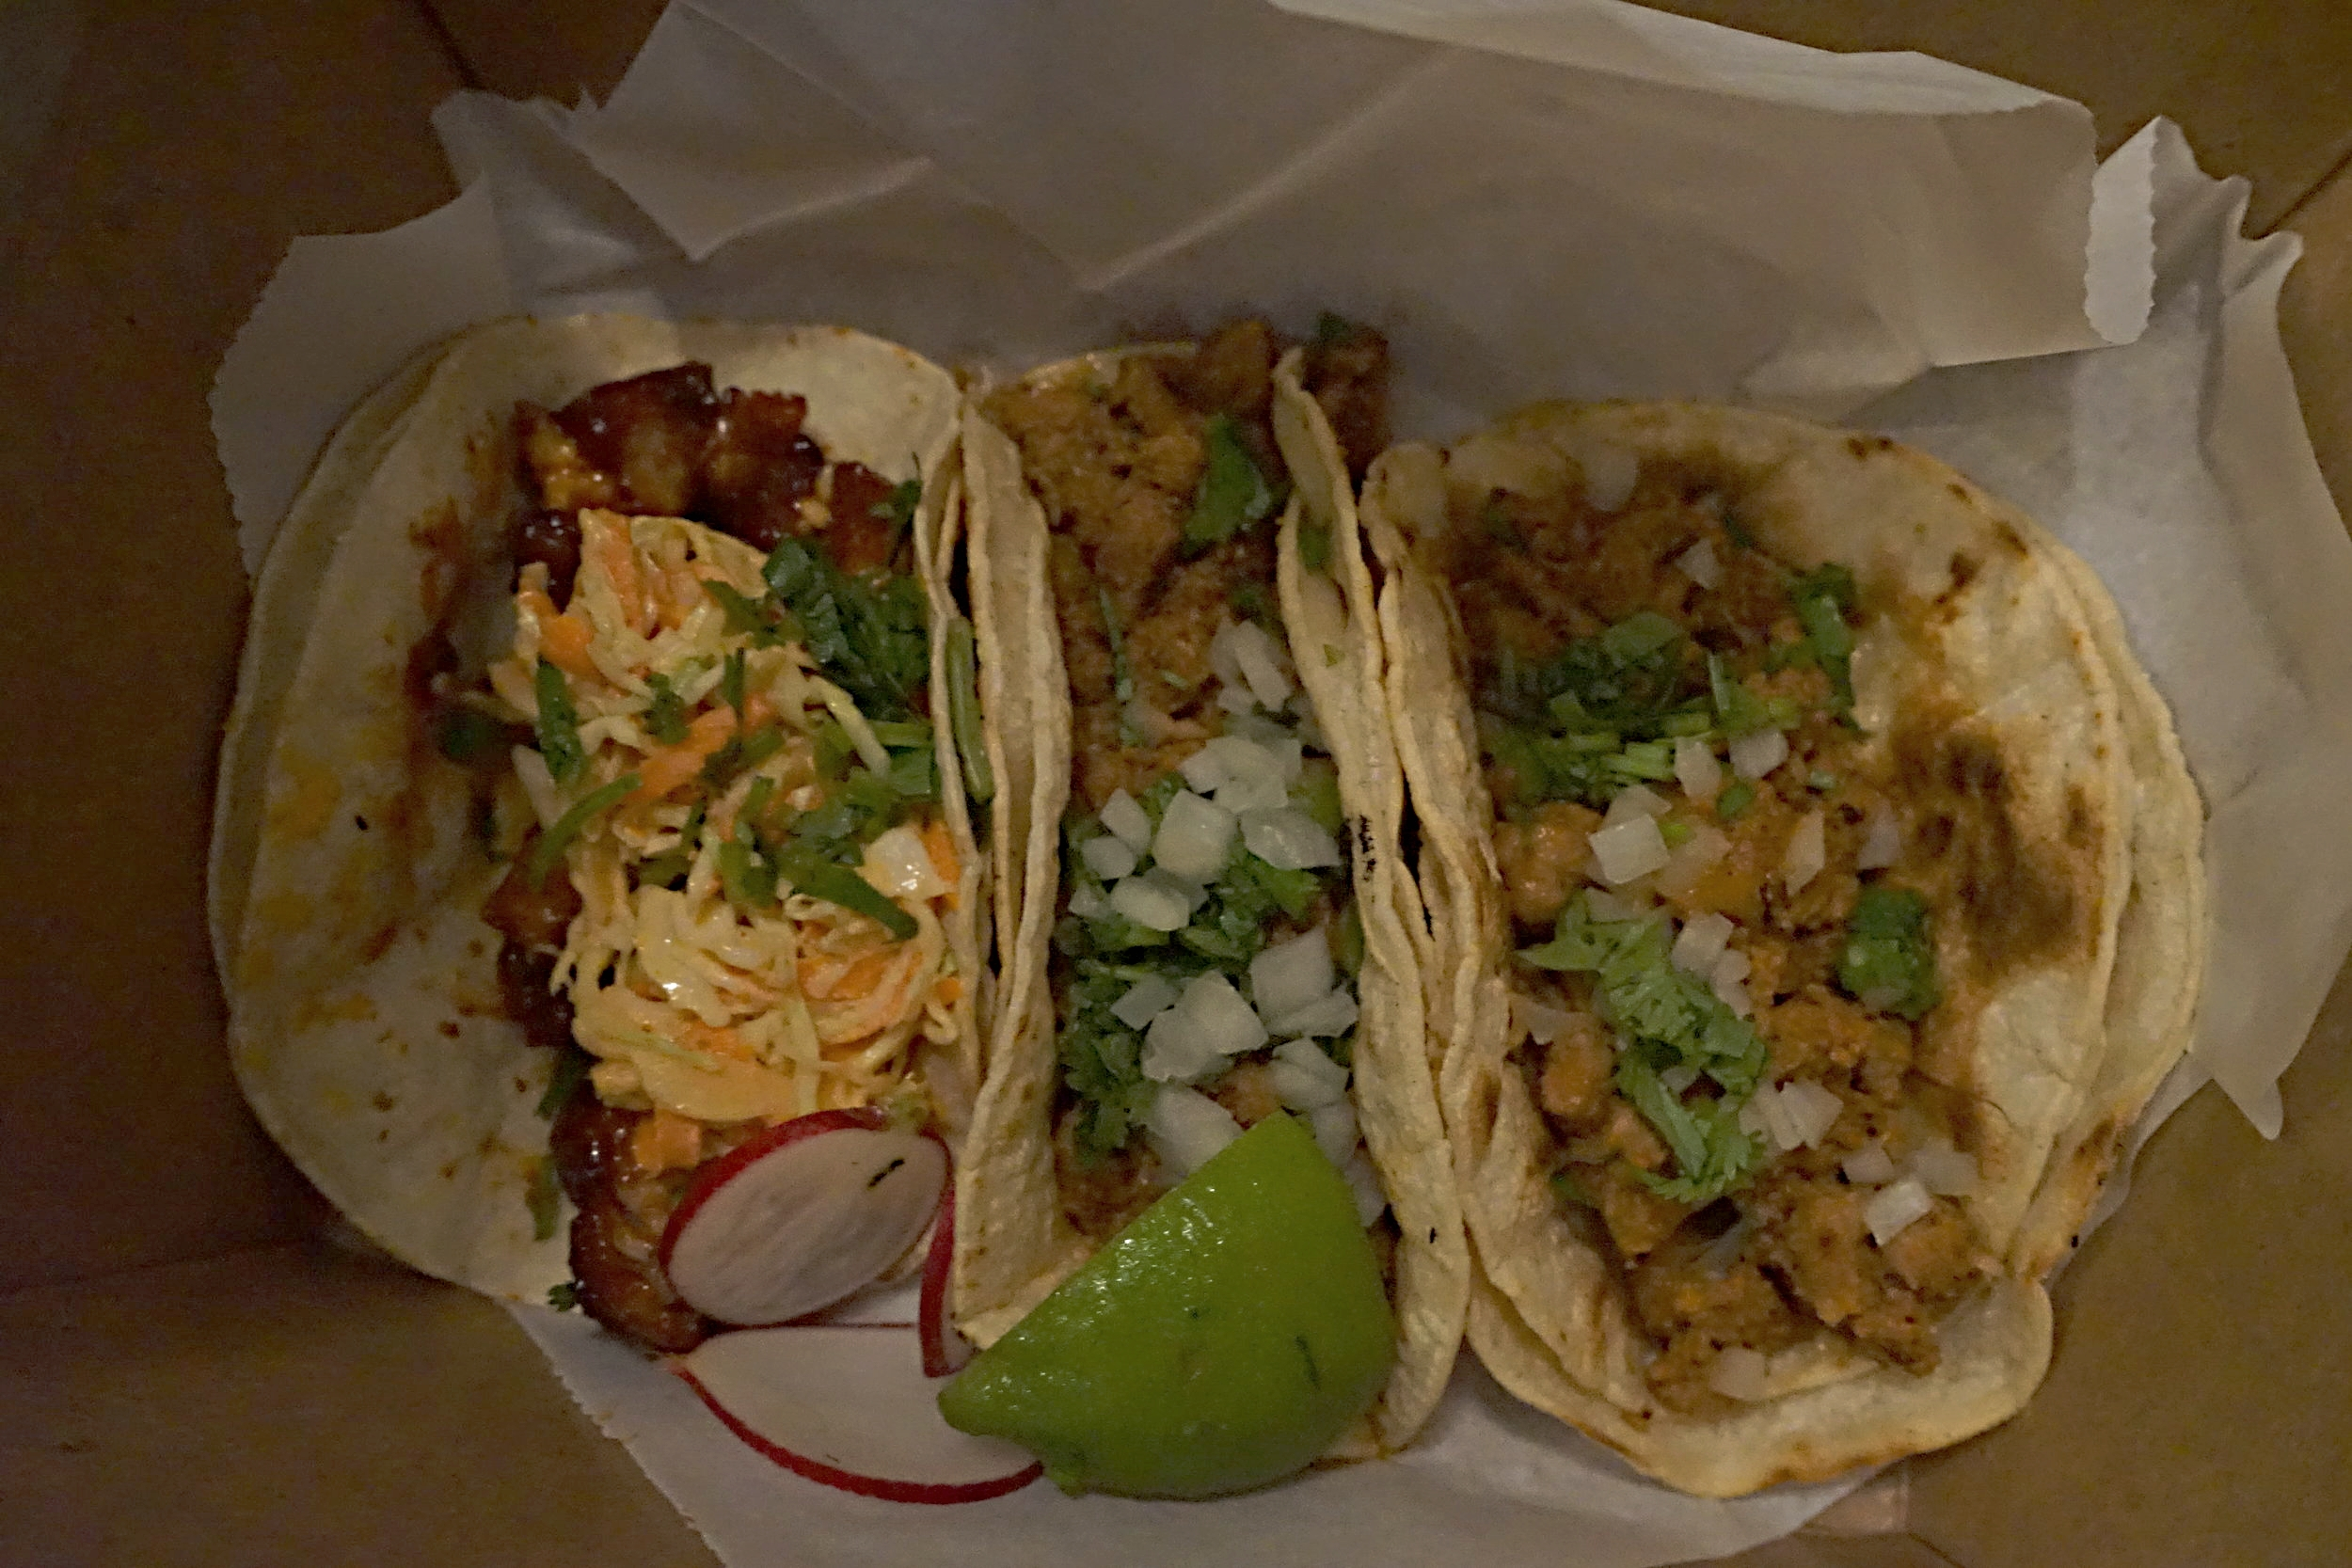 How I knew they were legit: Authentic Street Tacos